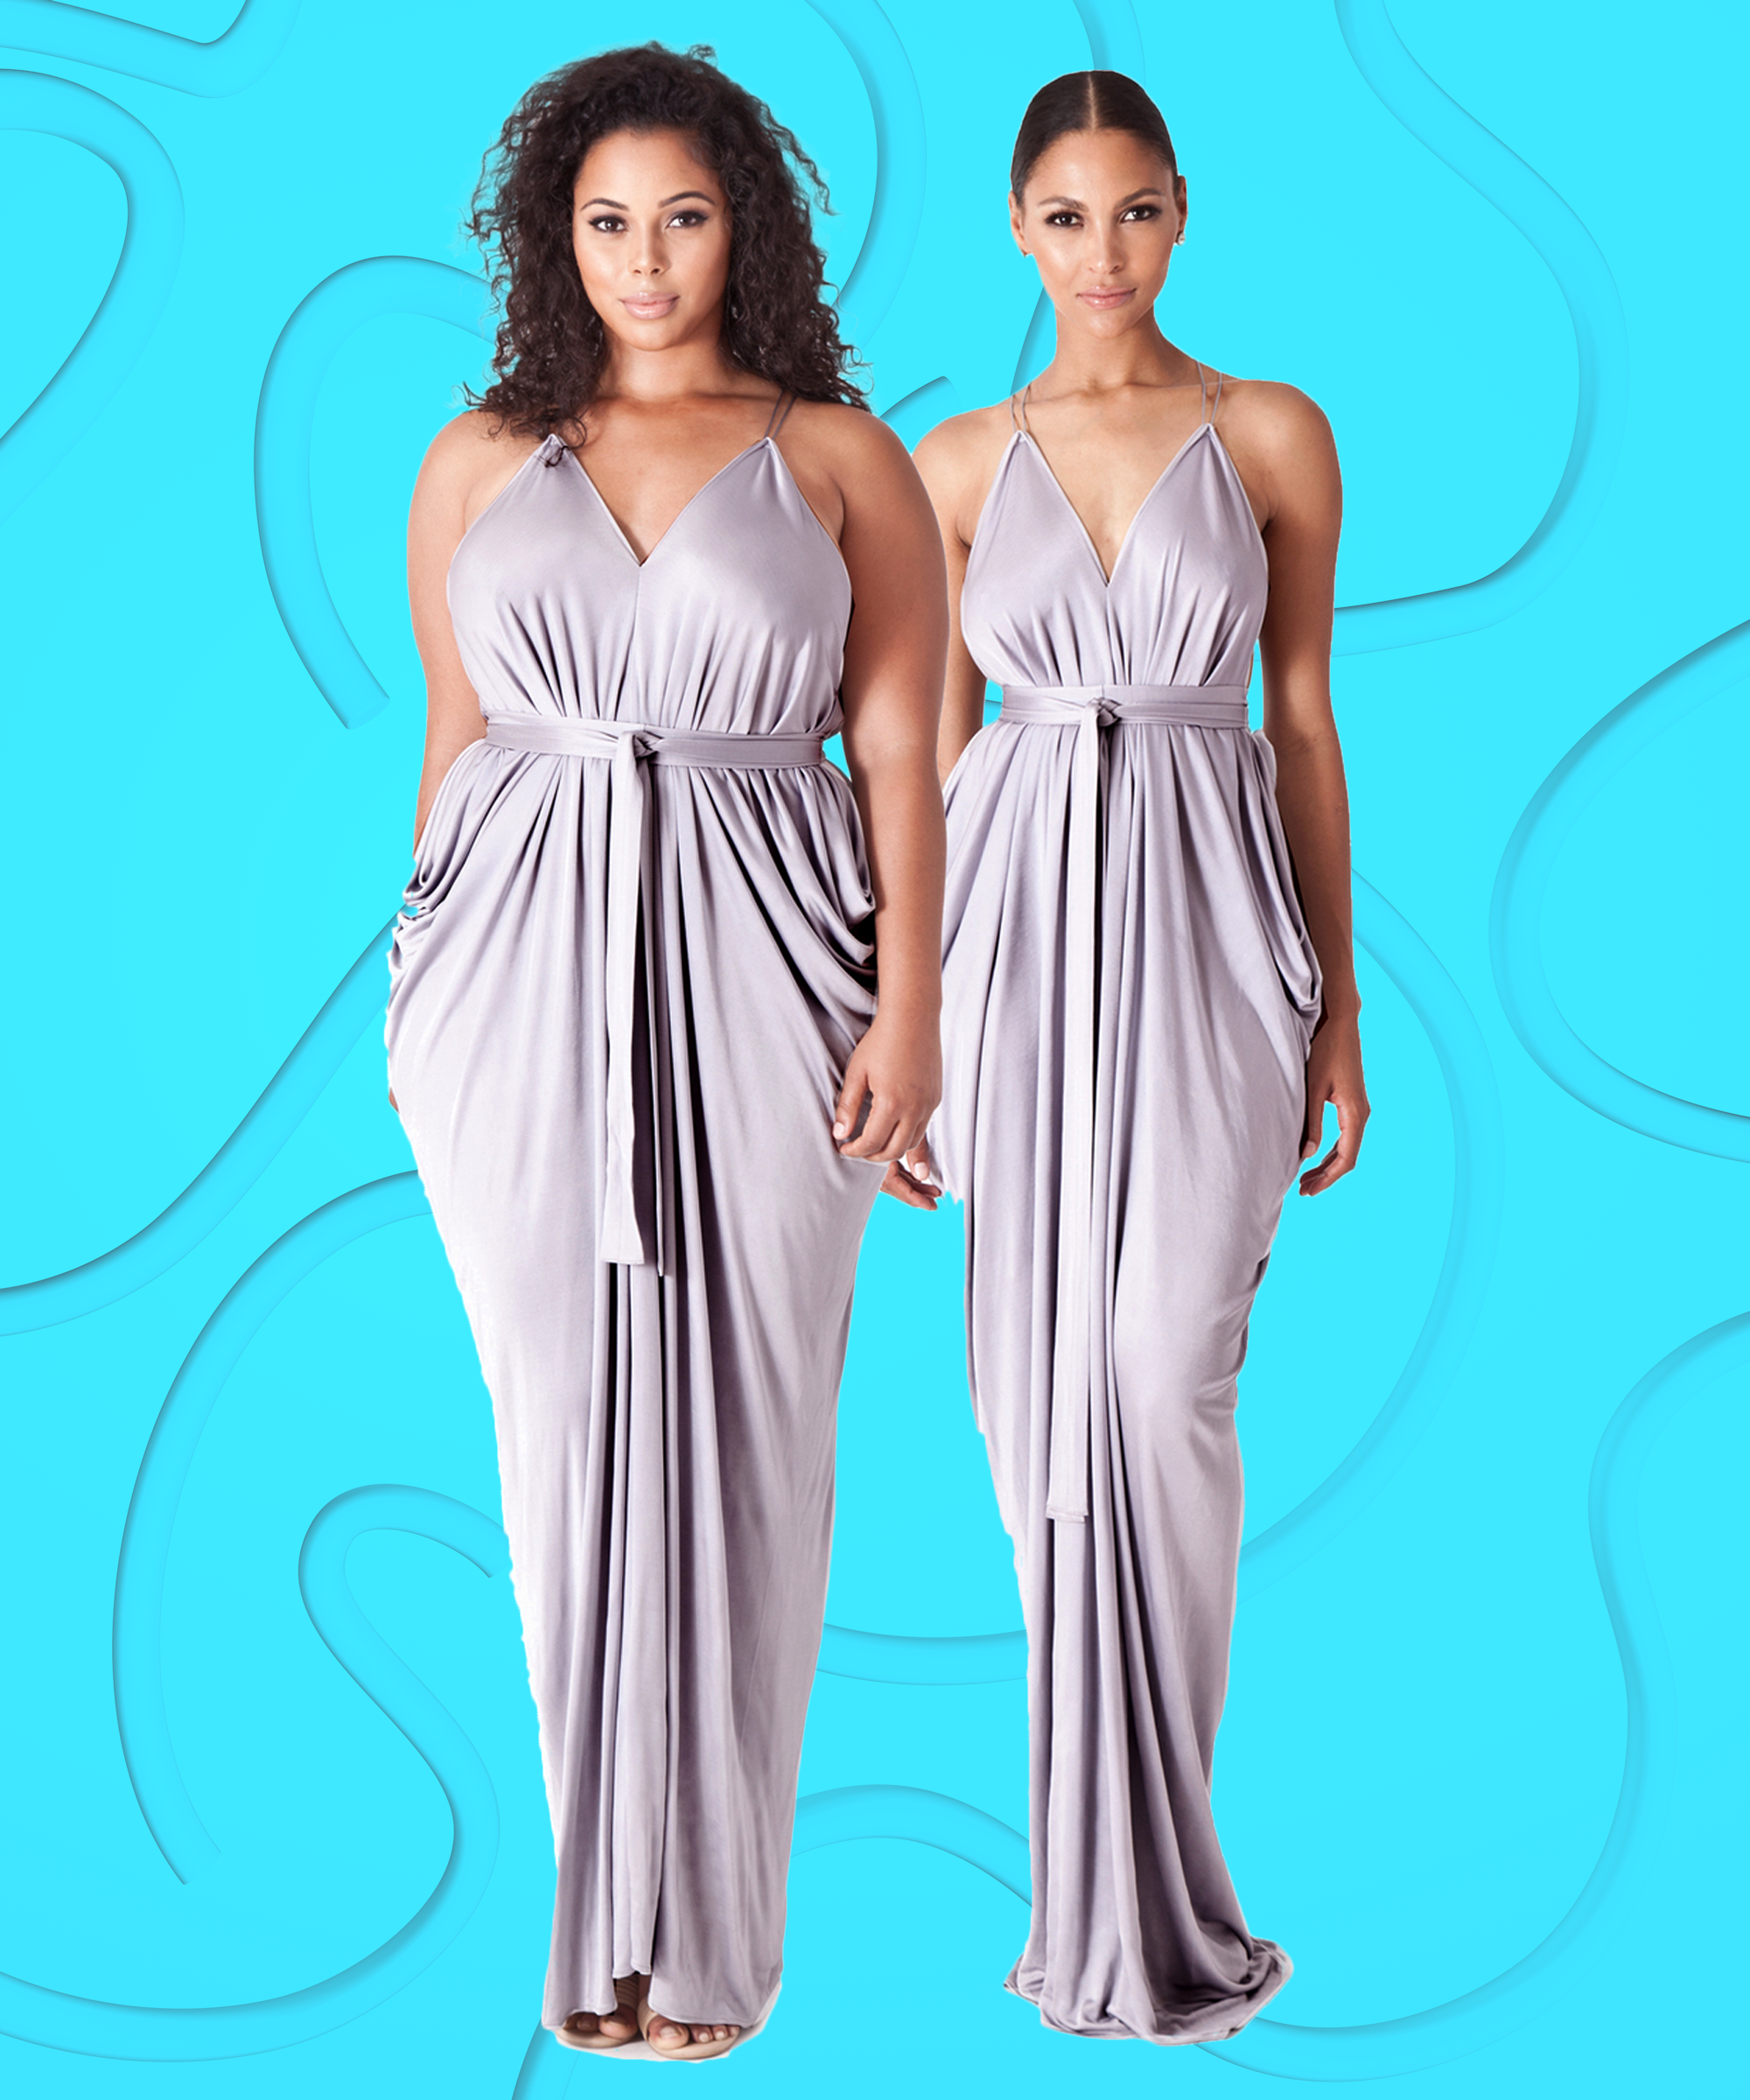 The one size fits all 300 bridesmaid dress you can wear 10 ways the one size fits all 300 bridesmaid dress you can wear 10 ways ombrellifo Images